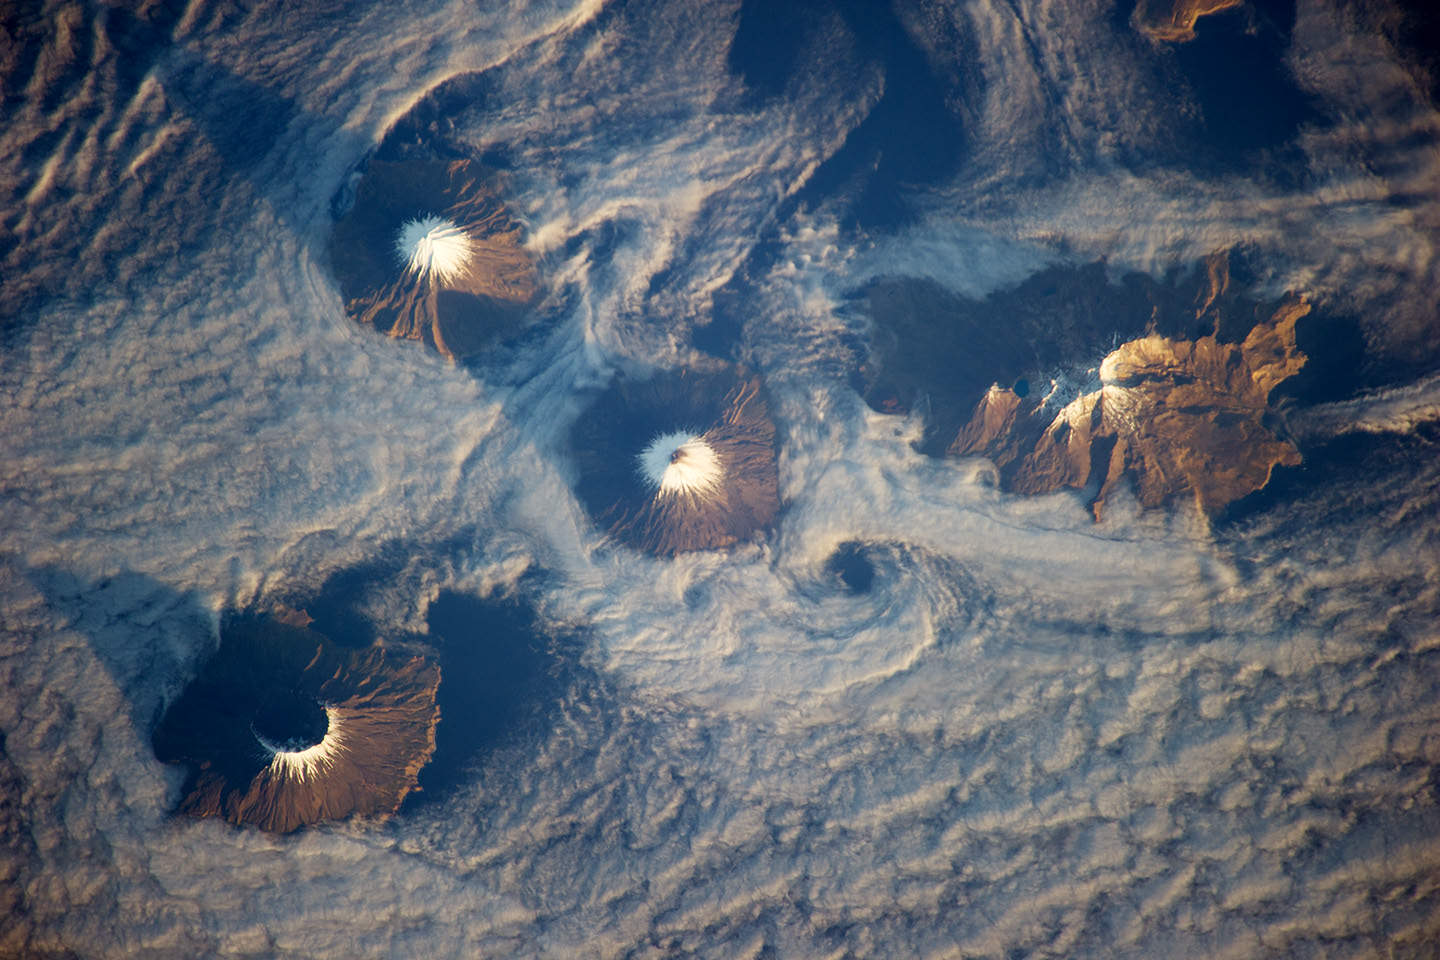 Clouds swirl around the Islands of the Four Mountains in Alaska's Aleutian chain.